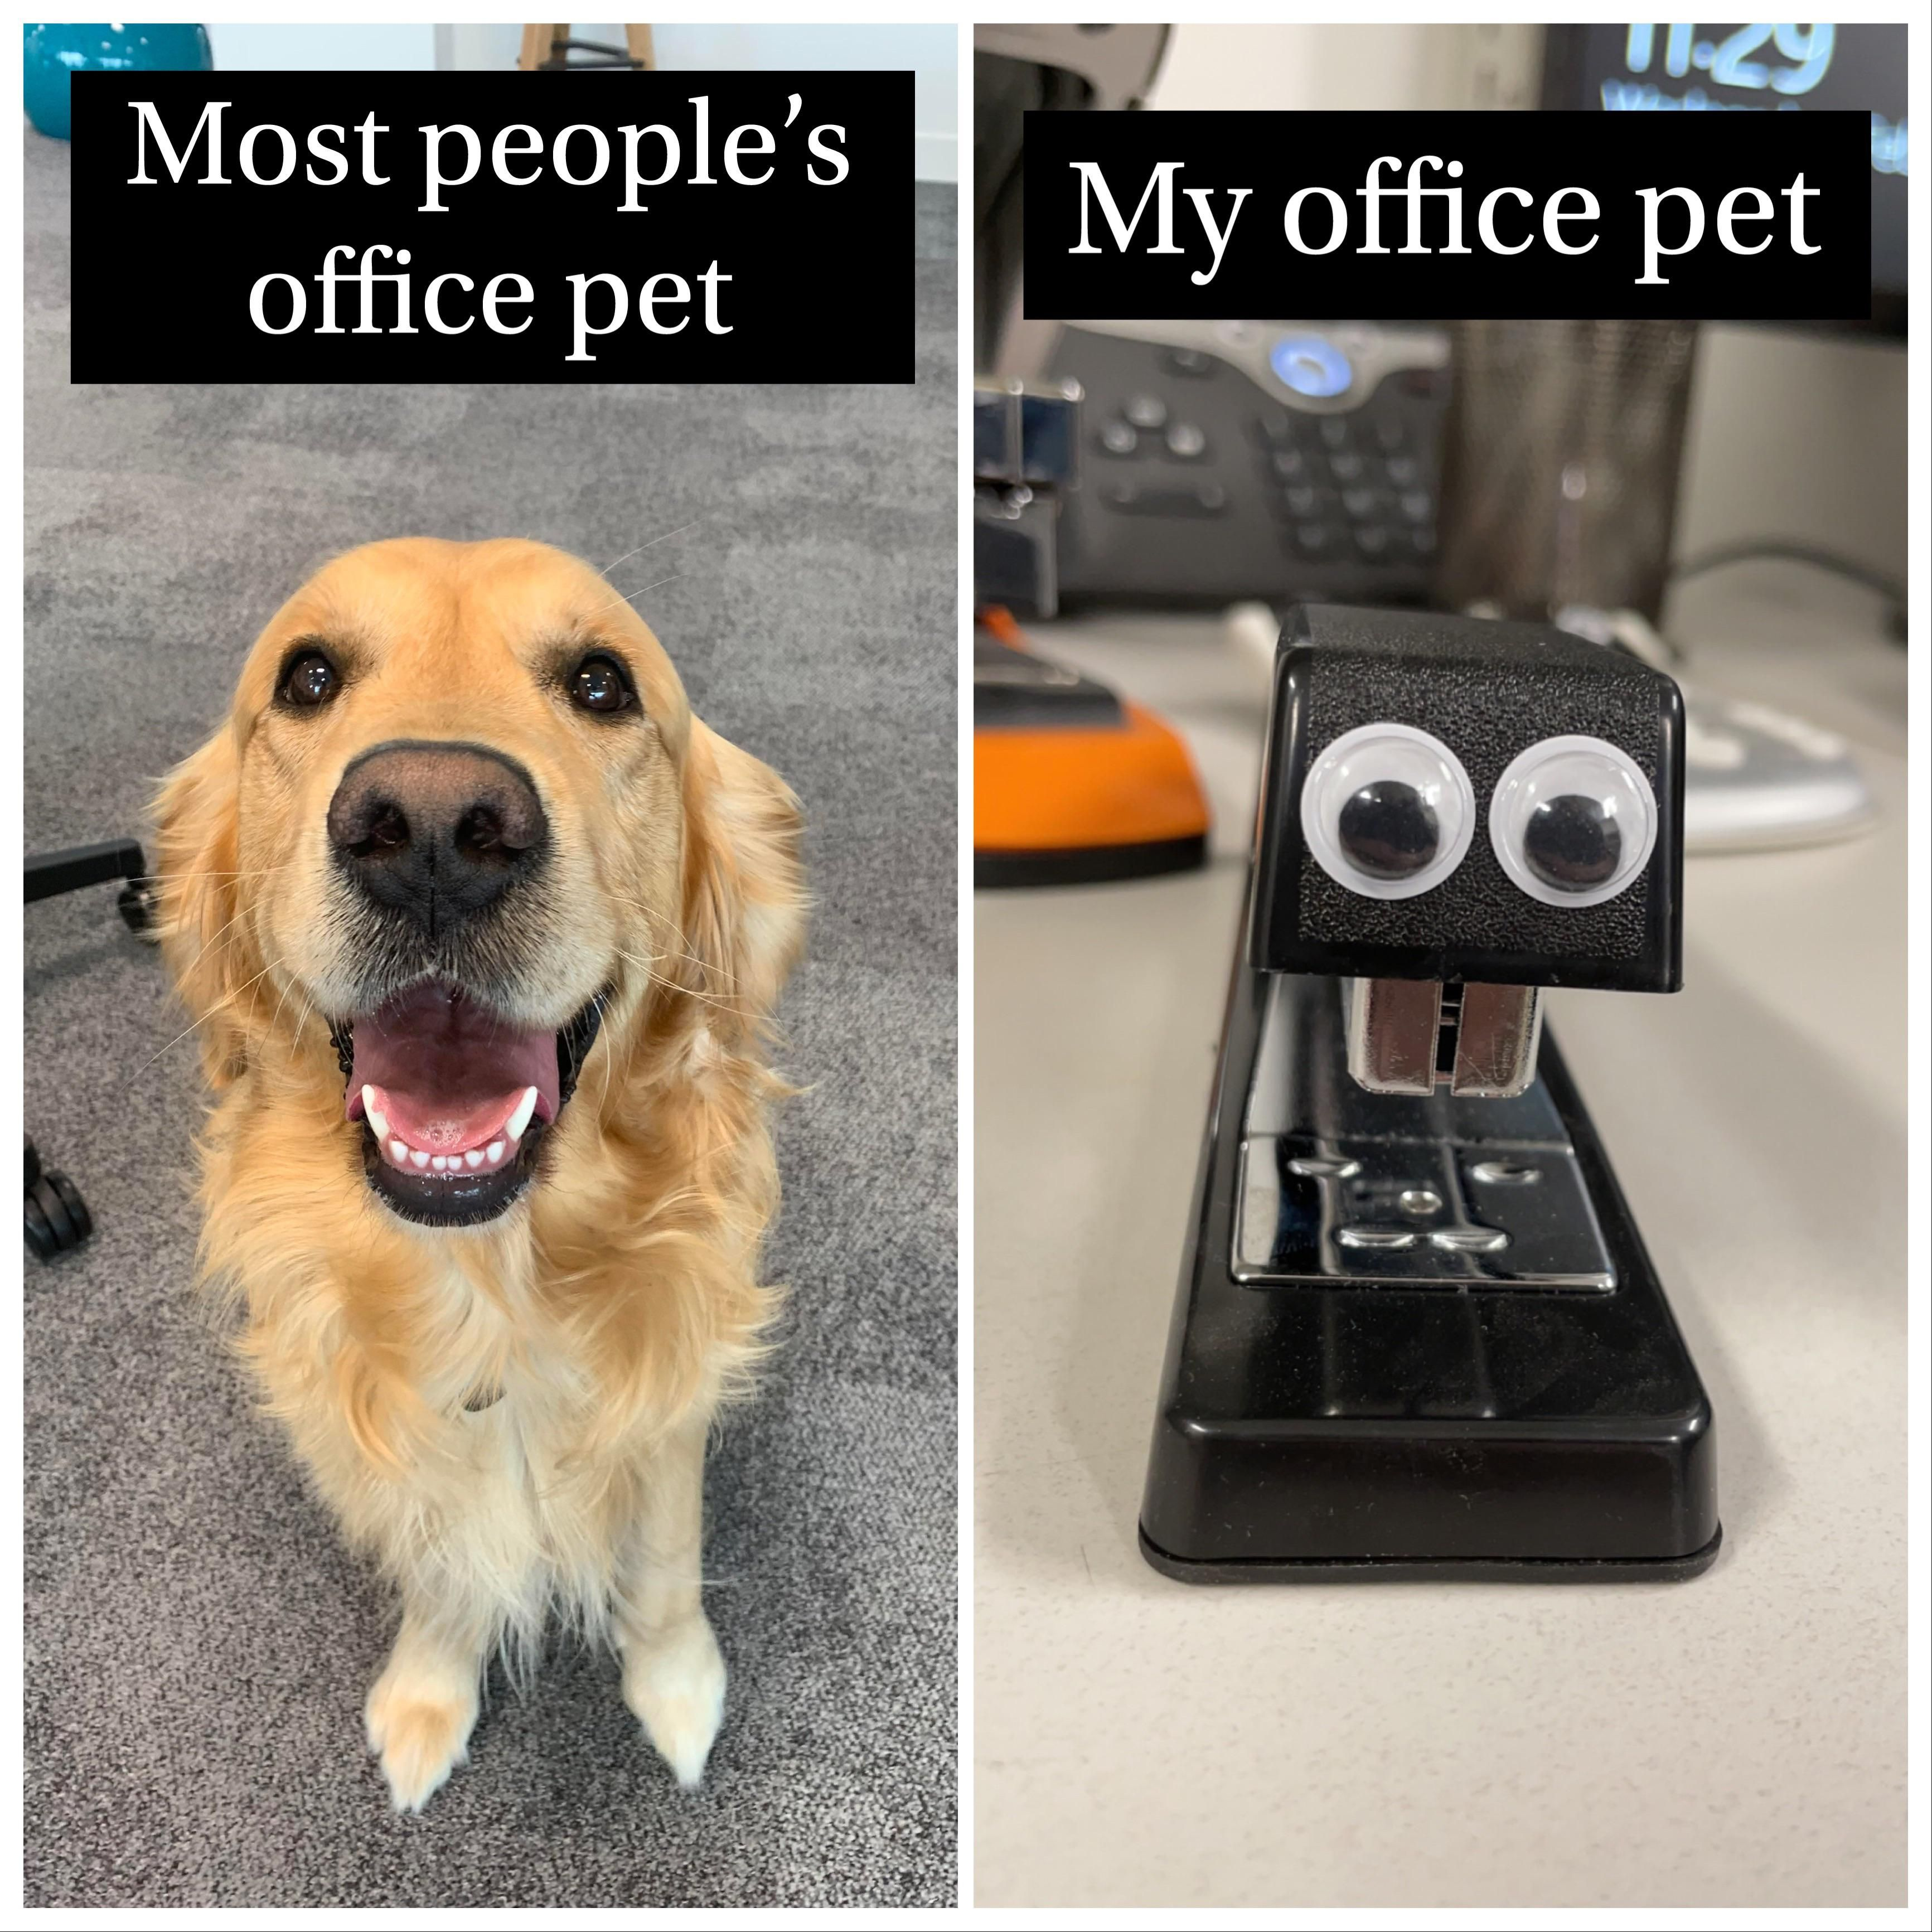 My office doesn't allow pets. I think I found a workaround. His name is Steve.